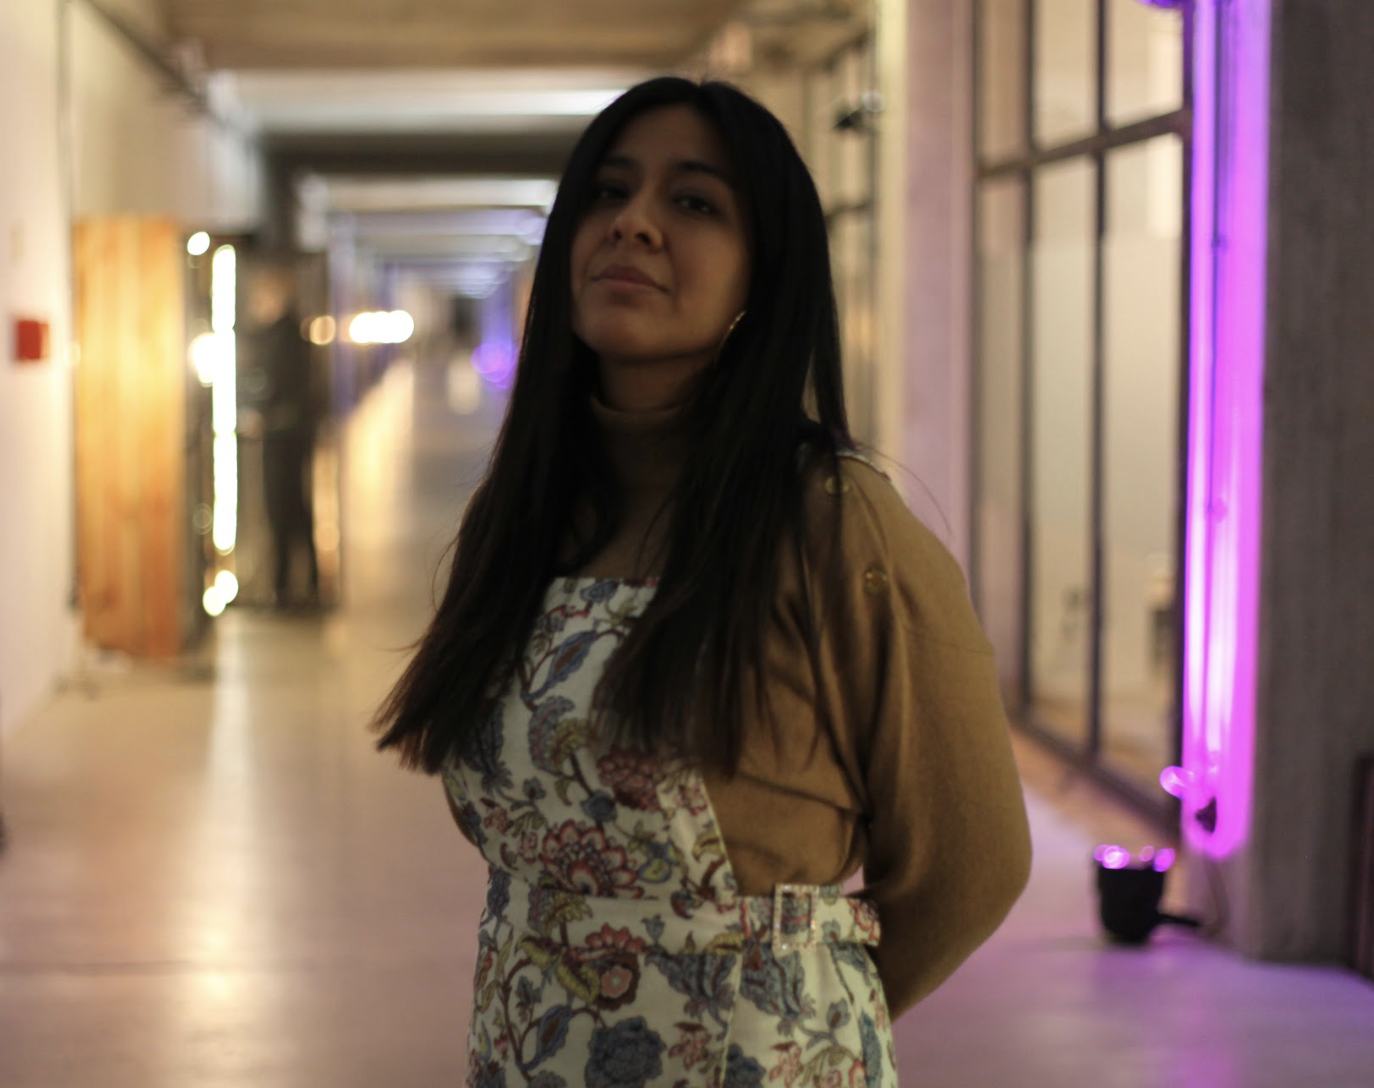 Abstract Turntablist Maria Chavez on the Freedom to Live Creatively